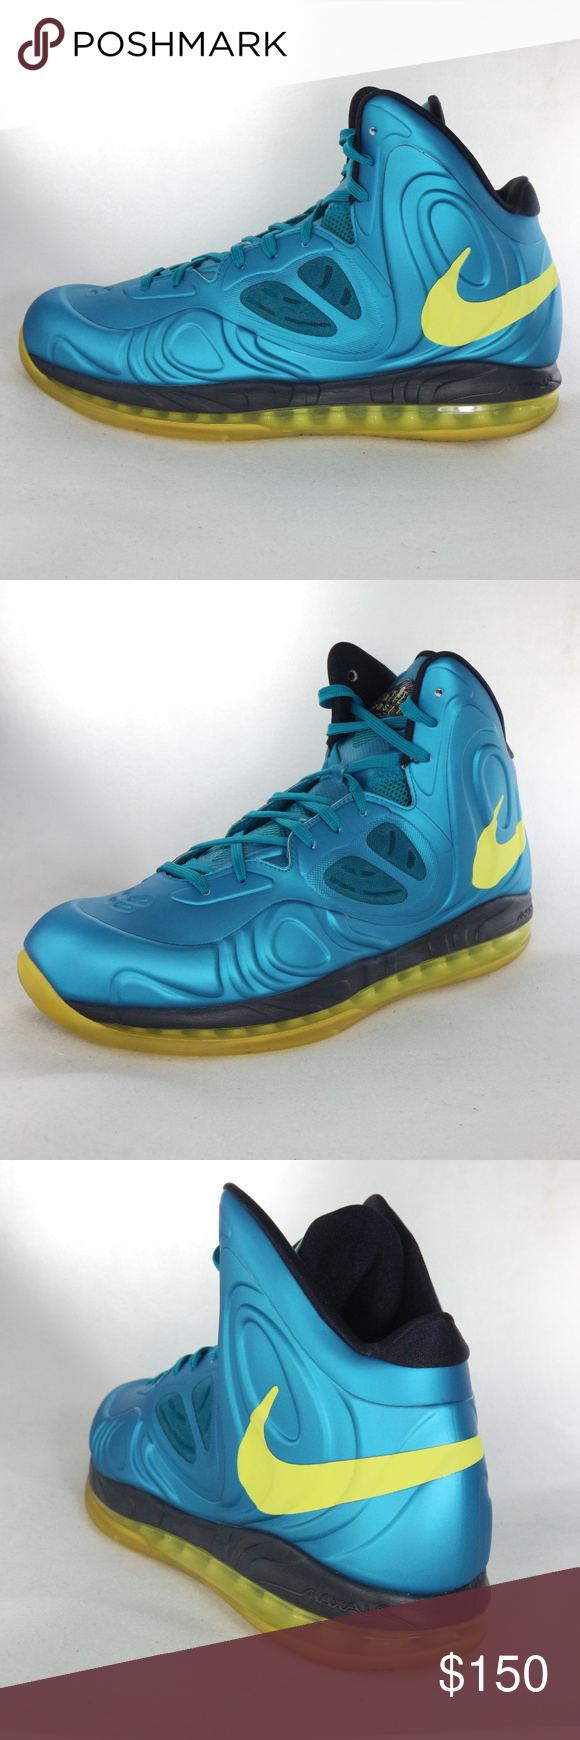 5c63506f12b NIKE Air Max Hyperposite Tropical Teal Sonic Shoes Super clean Hyperposite  Nike with a bright finished